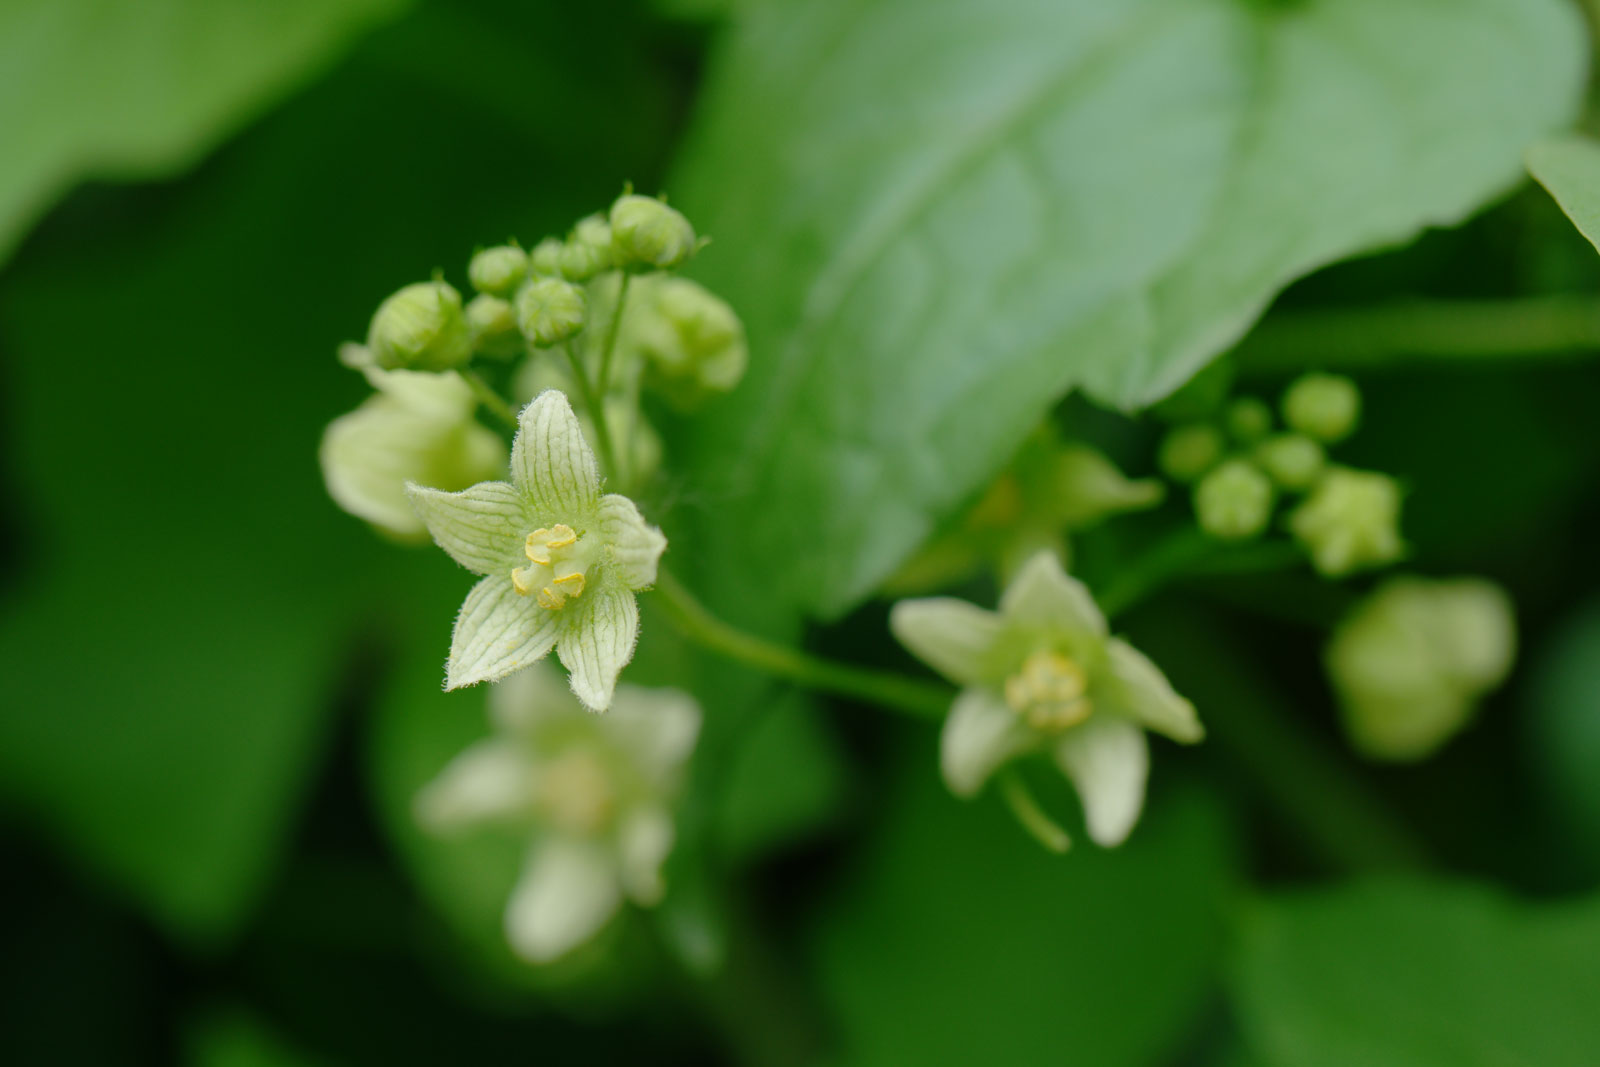 bryonia-dioica-1